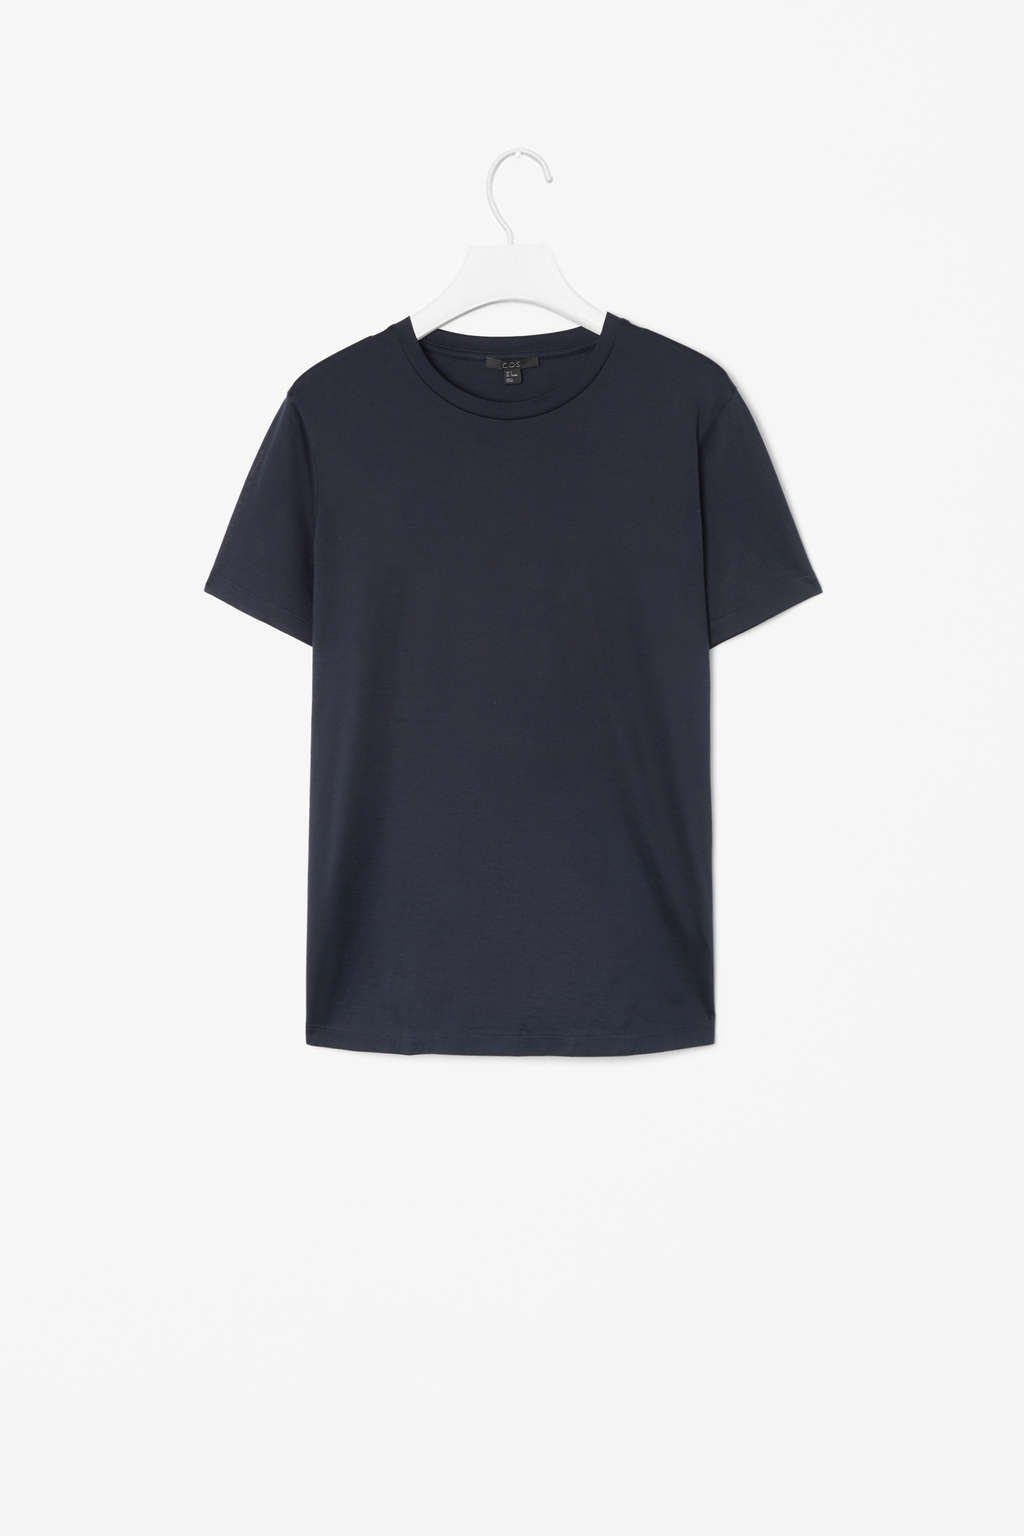 Short Sleeved T Shirt - pattern: plain; style: t-shirt; predominant colour: navy; occasions: casual; length: standard; fibres: cotton - stretch; fit: straight cut; neckline: crew; sleeve length: short sleeve; sleeve style: standard; pattern type: fabric; texture group: jersey - stretchy/drapey; season: s/s 2014